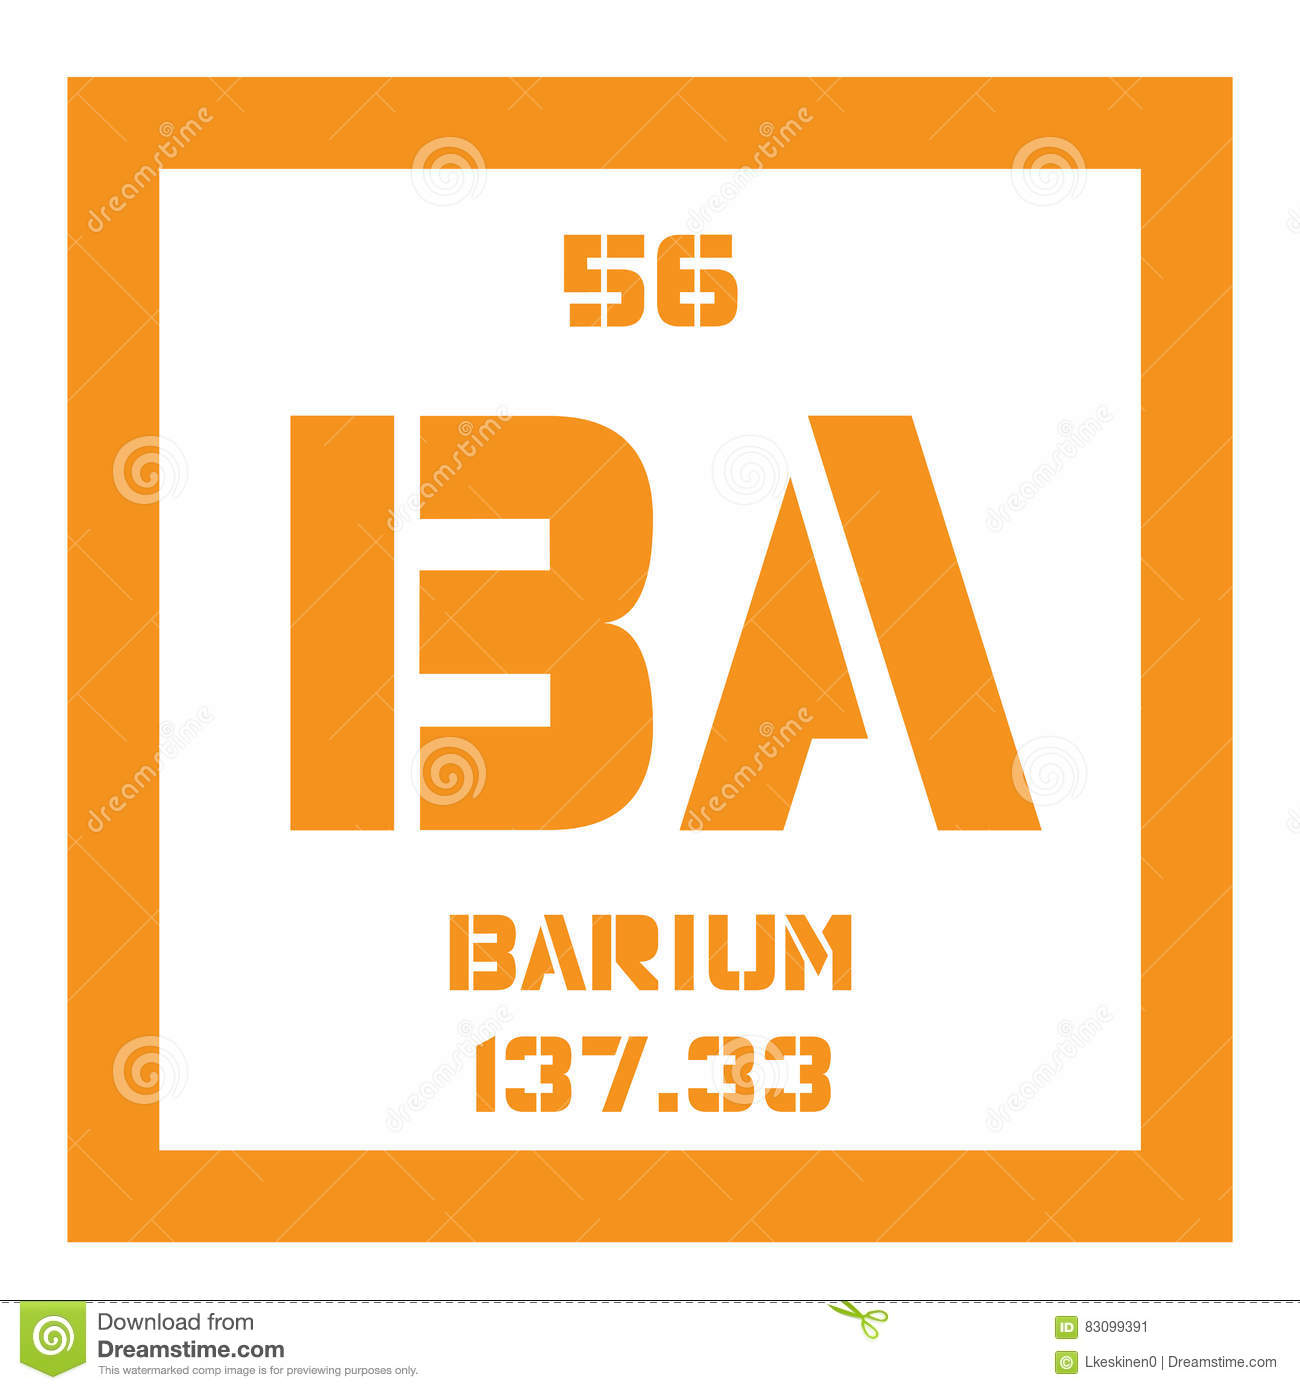 Barium Chemical Element Stock Vector Illustration Of Atomic 83099391